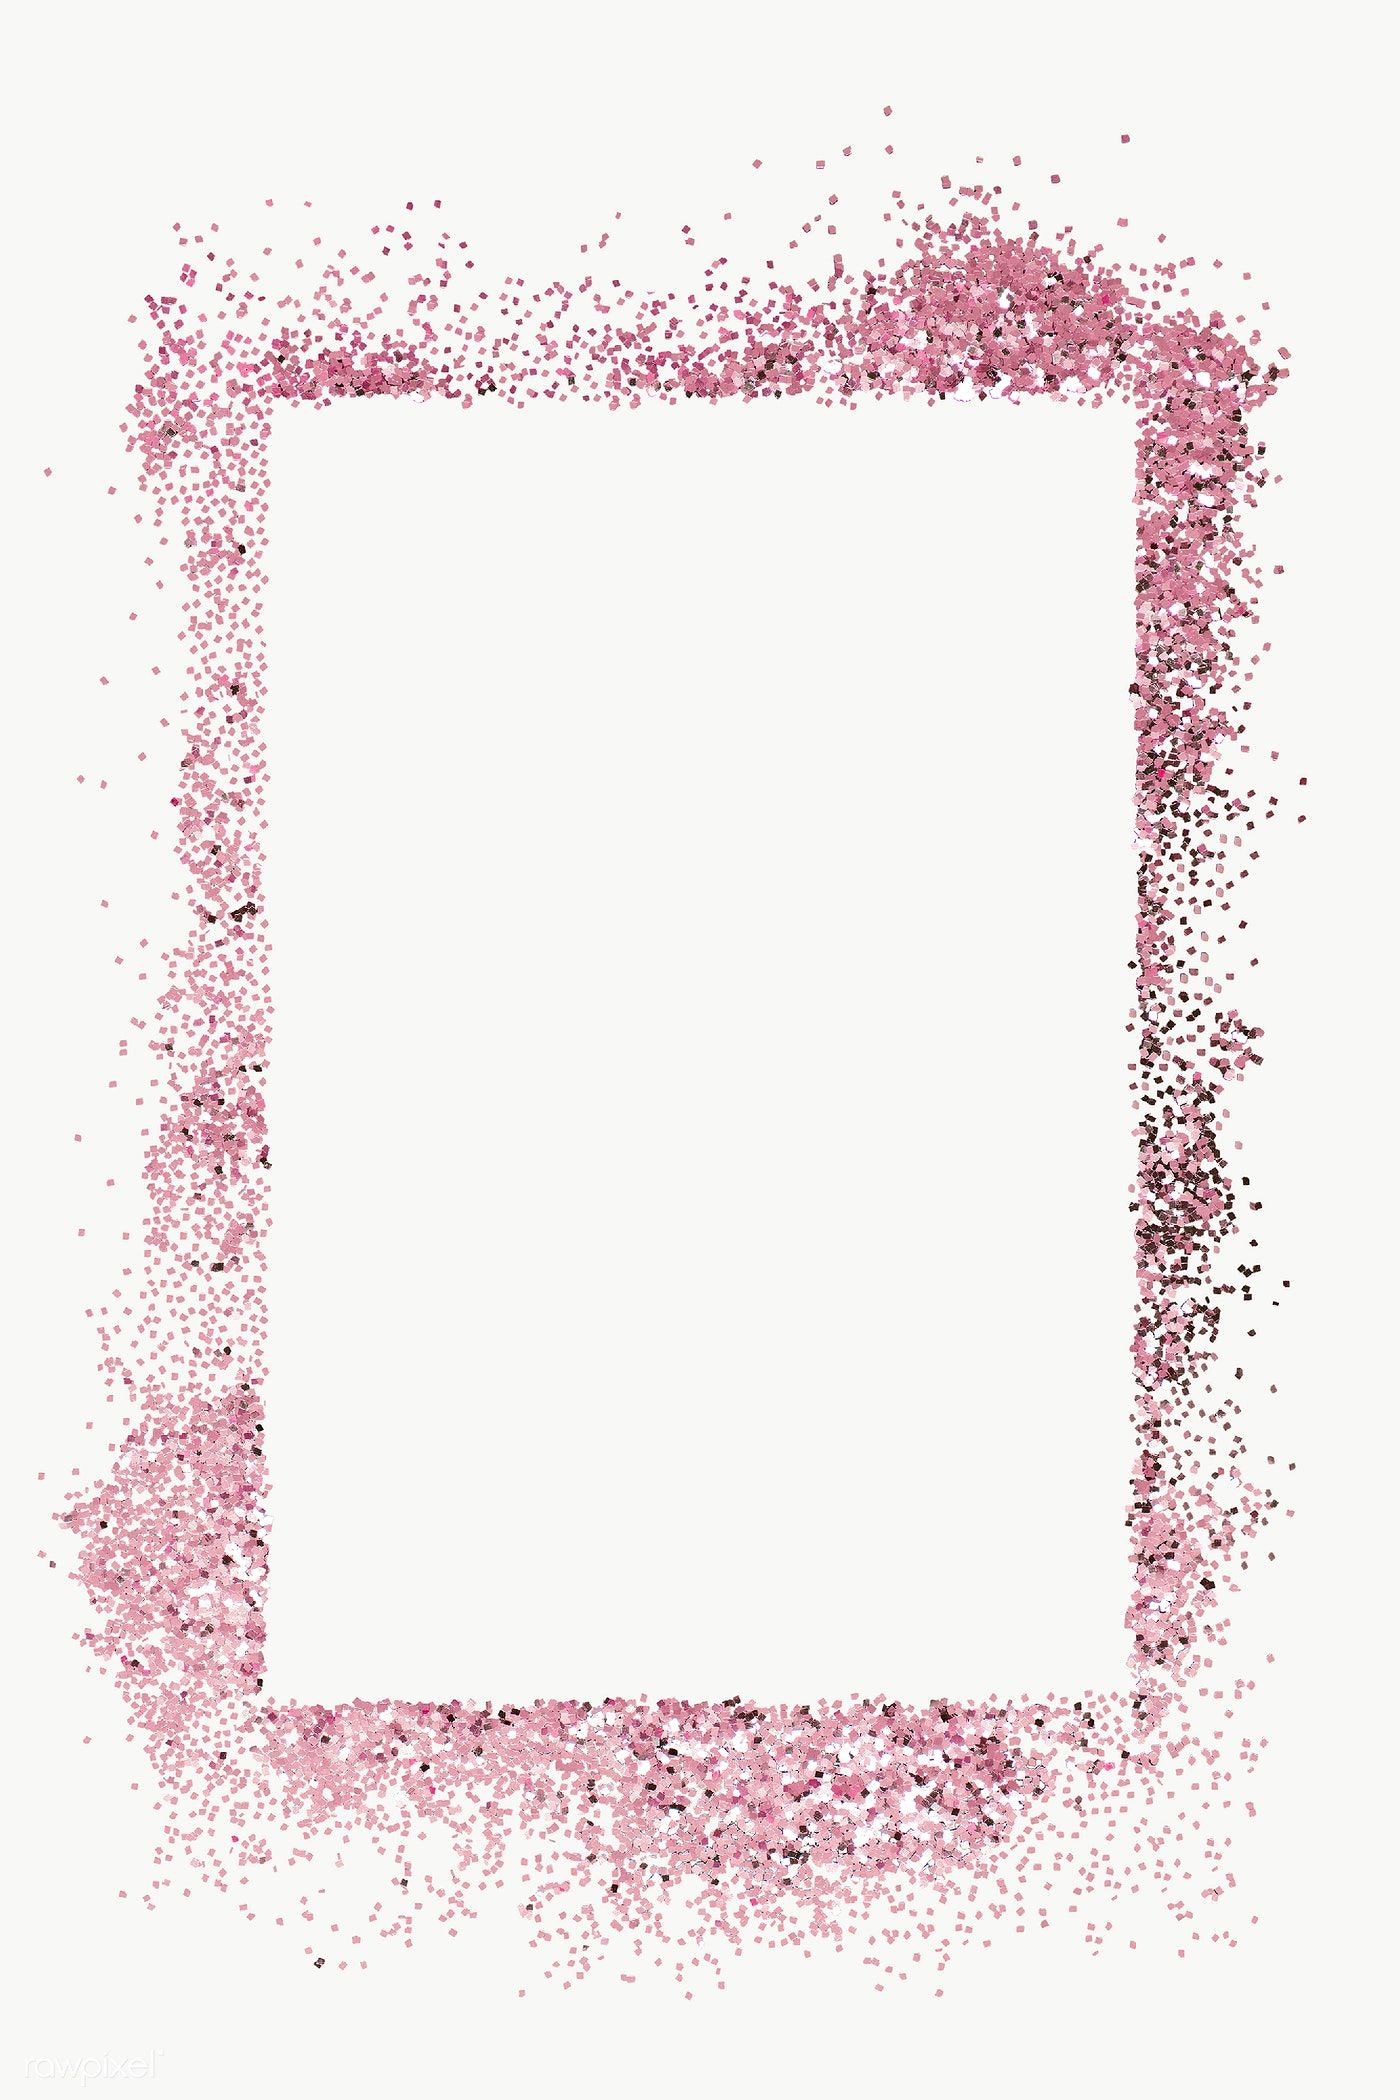 Magenta Pink Glitter Patterned Background Design Element Free Image By Rawpixel Com Katie Background Design Background Patterns Pink Glitter